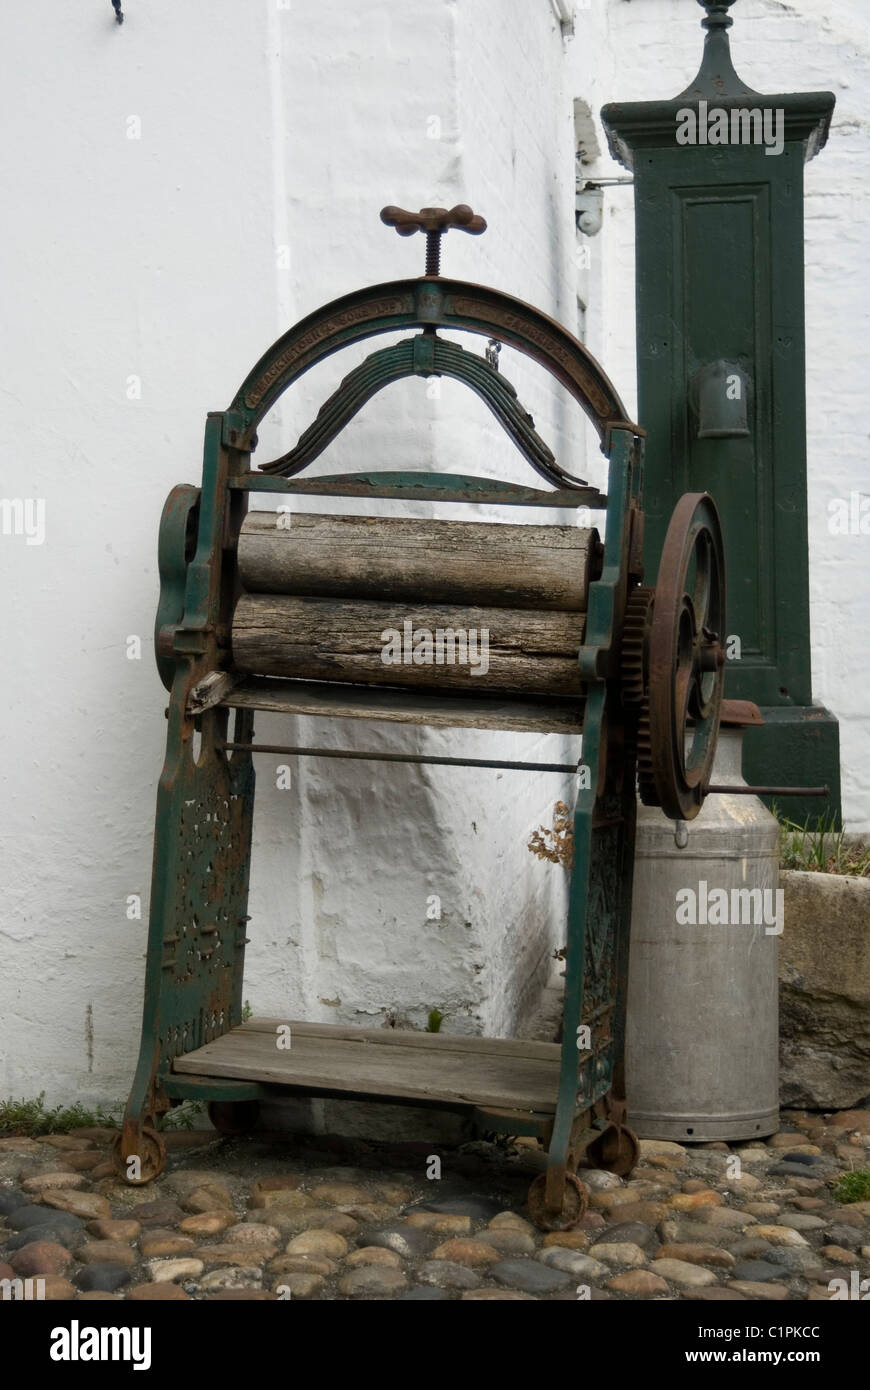 England, Cambridge, laundry mangle - Stock Image